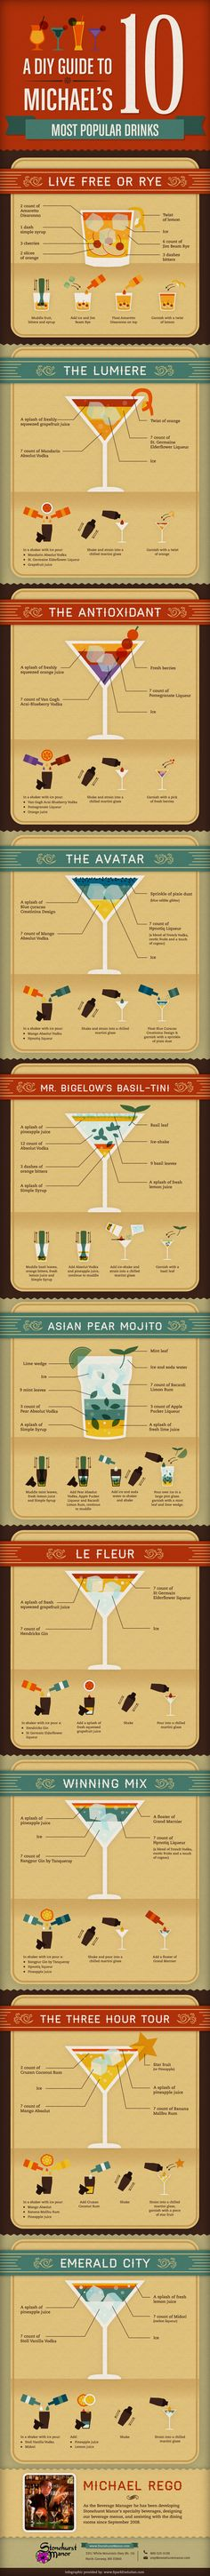 DIY mixology - 10 most popular drinks